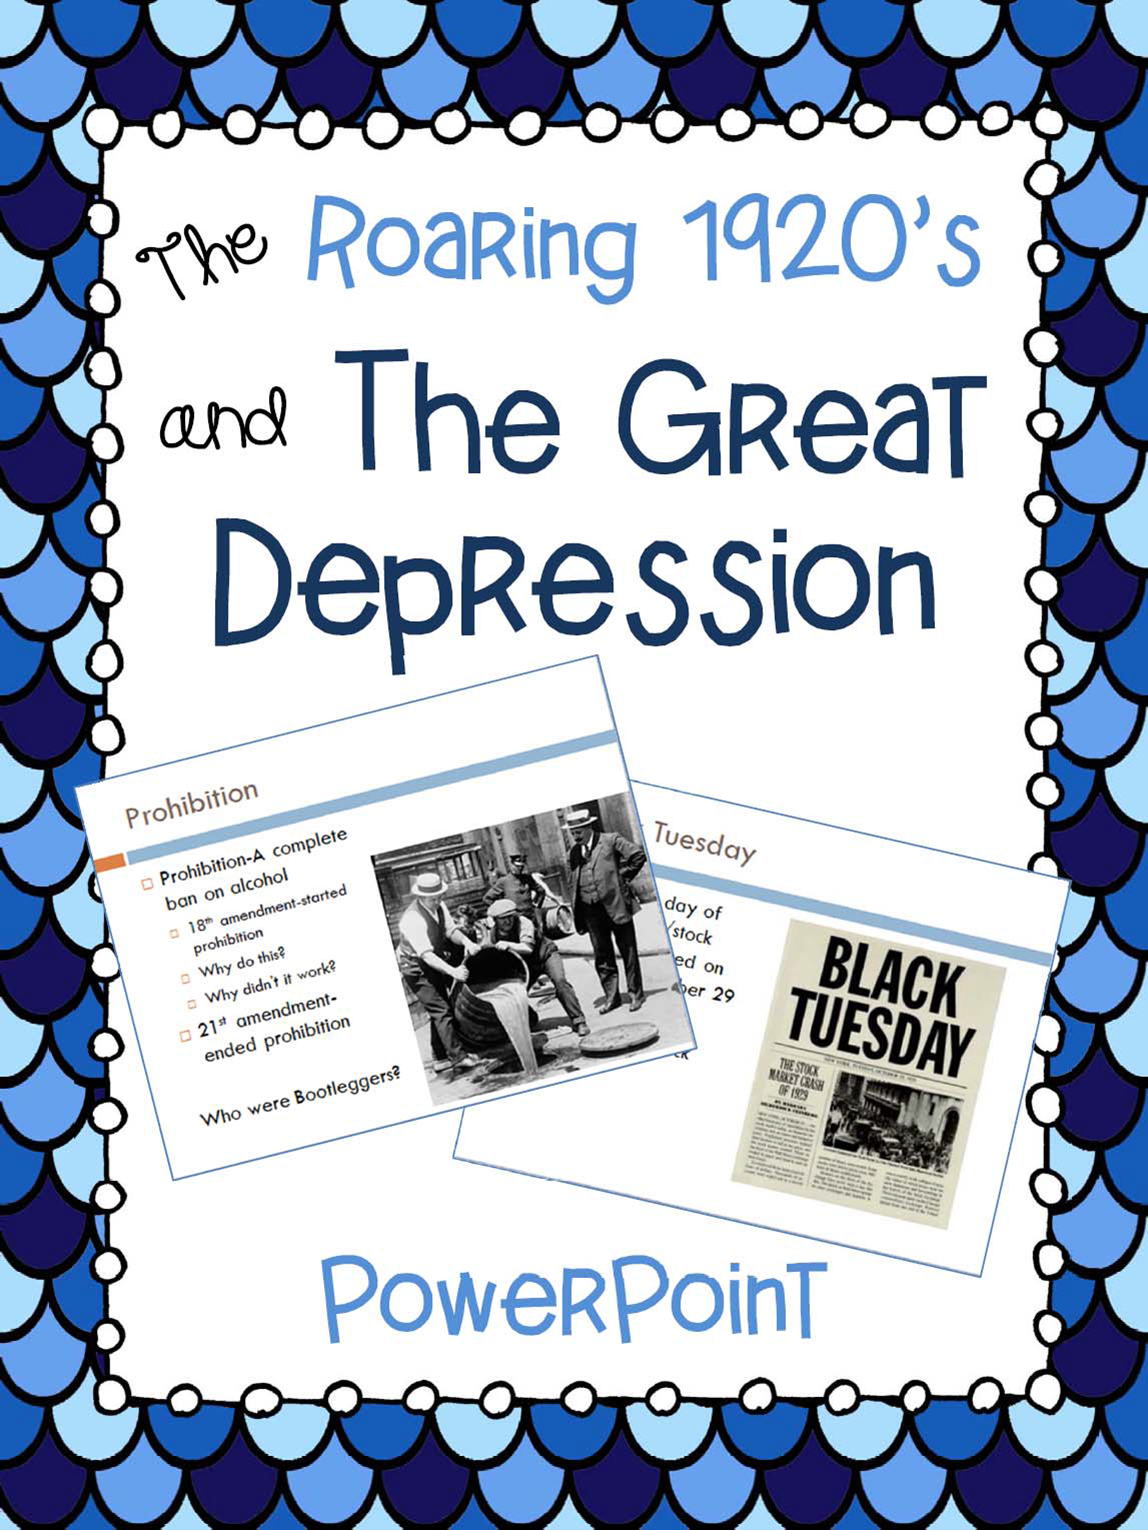 great depression photo analysis centers activity and writing the roaring 1920 s and the great depression powerpoint presentation aligned 5th grade social studies